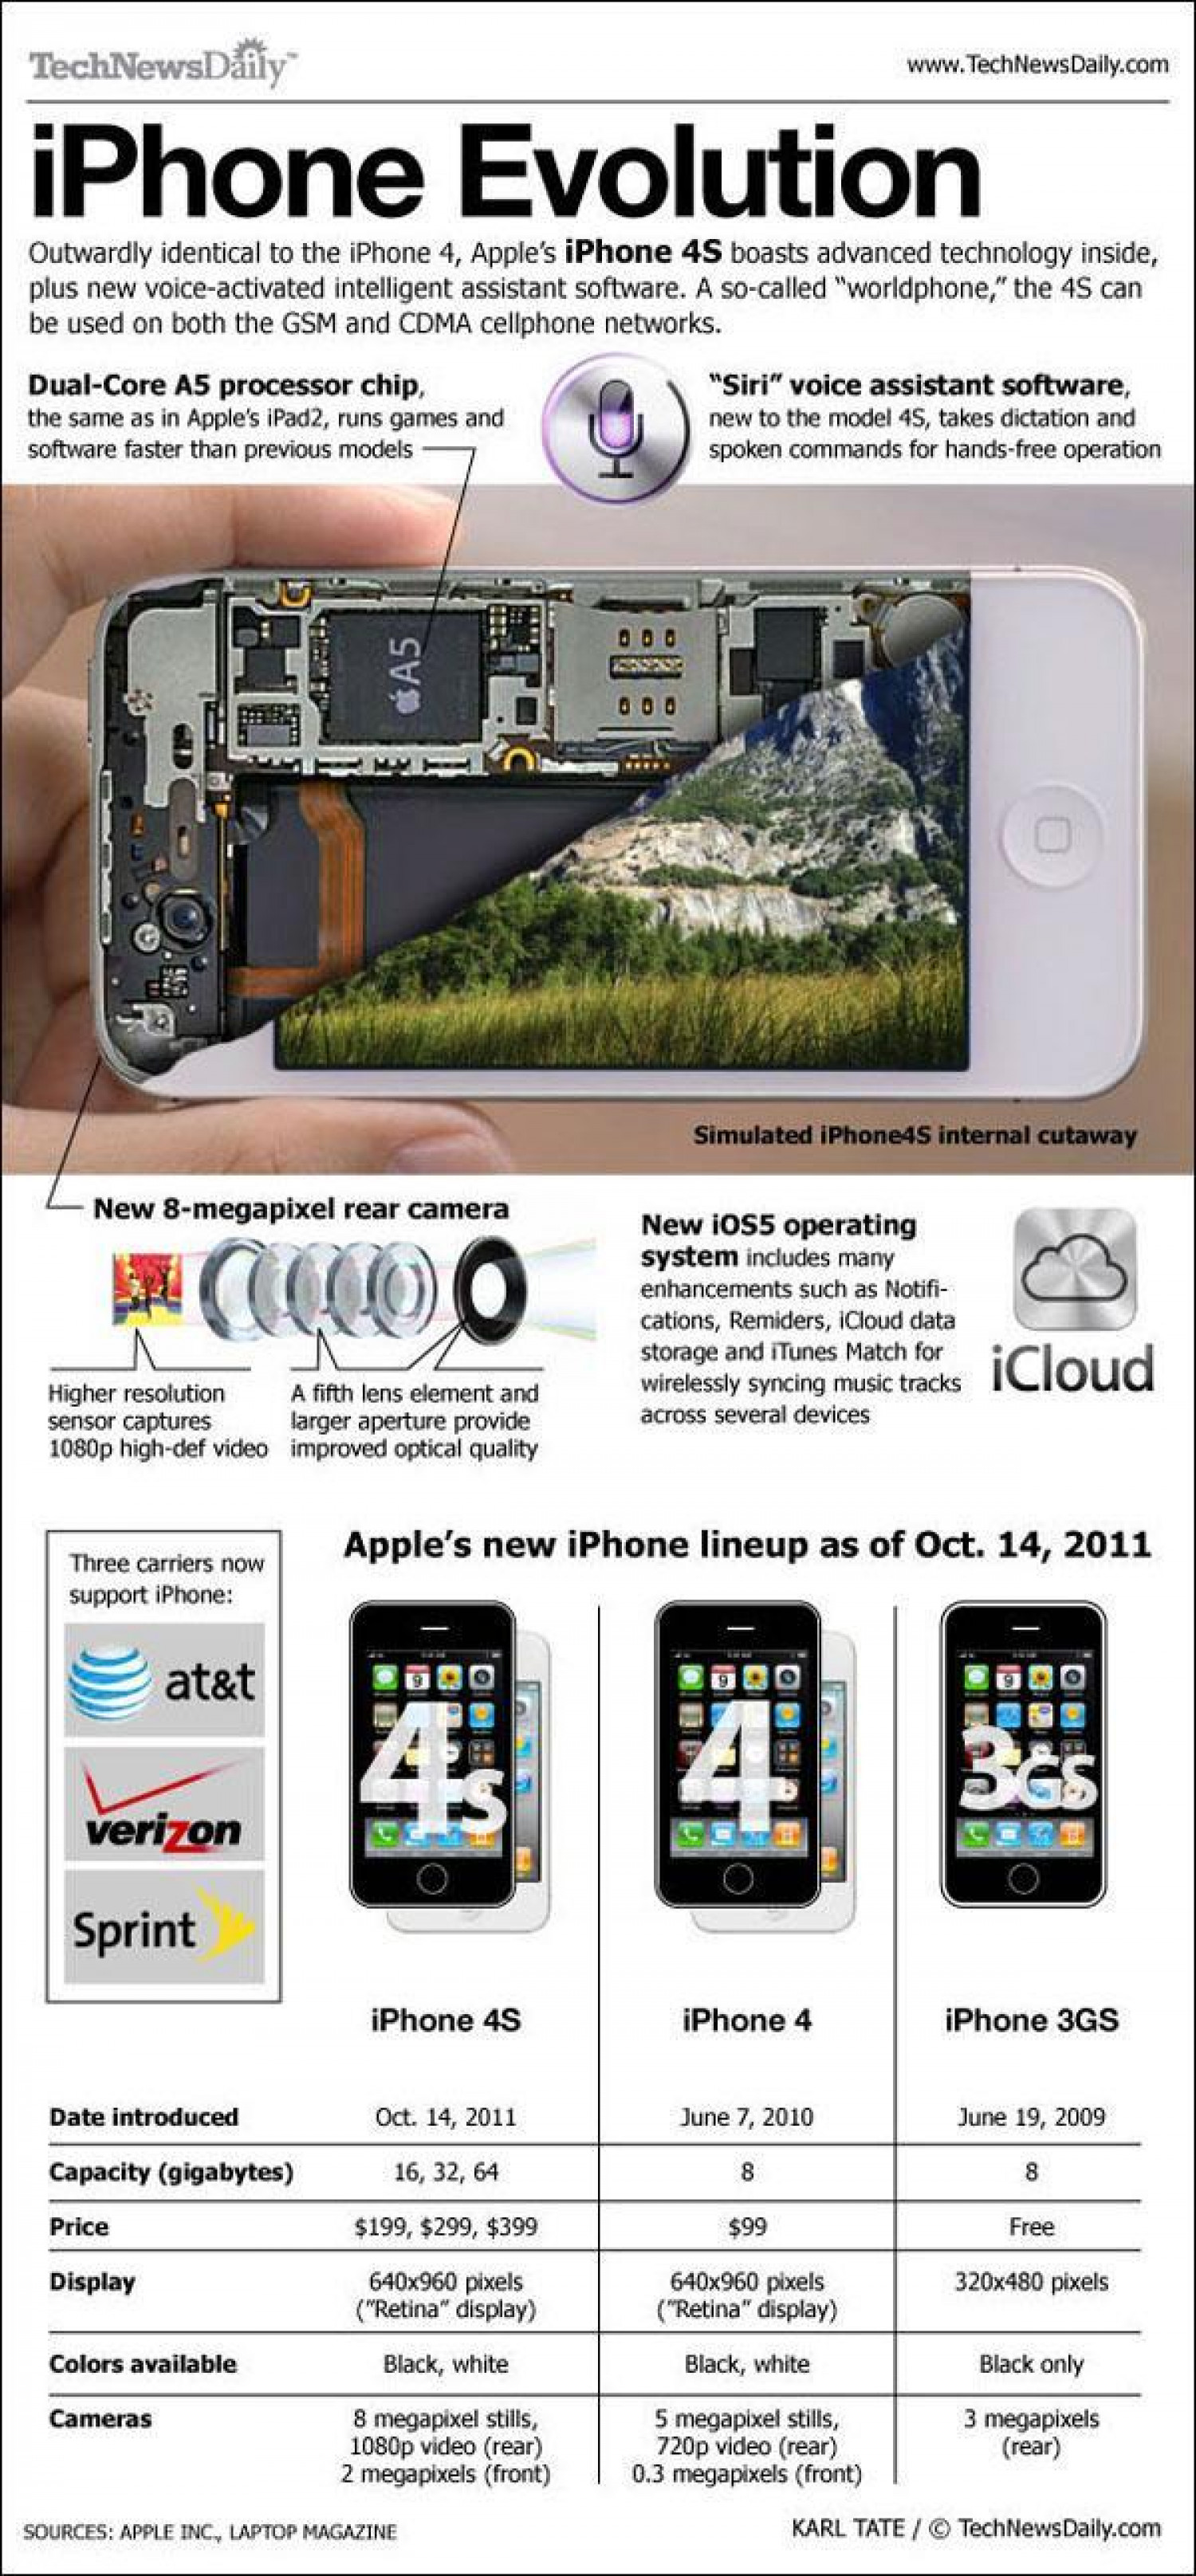 iPhone 4S Key Facts Infographic